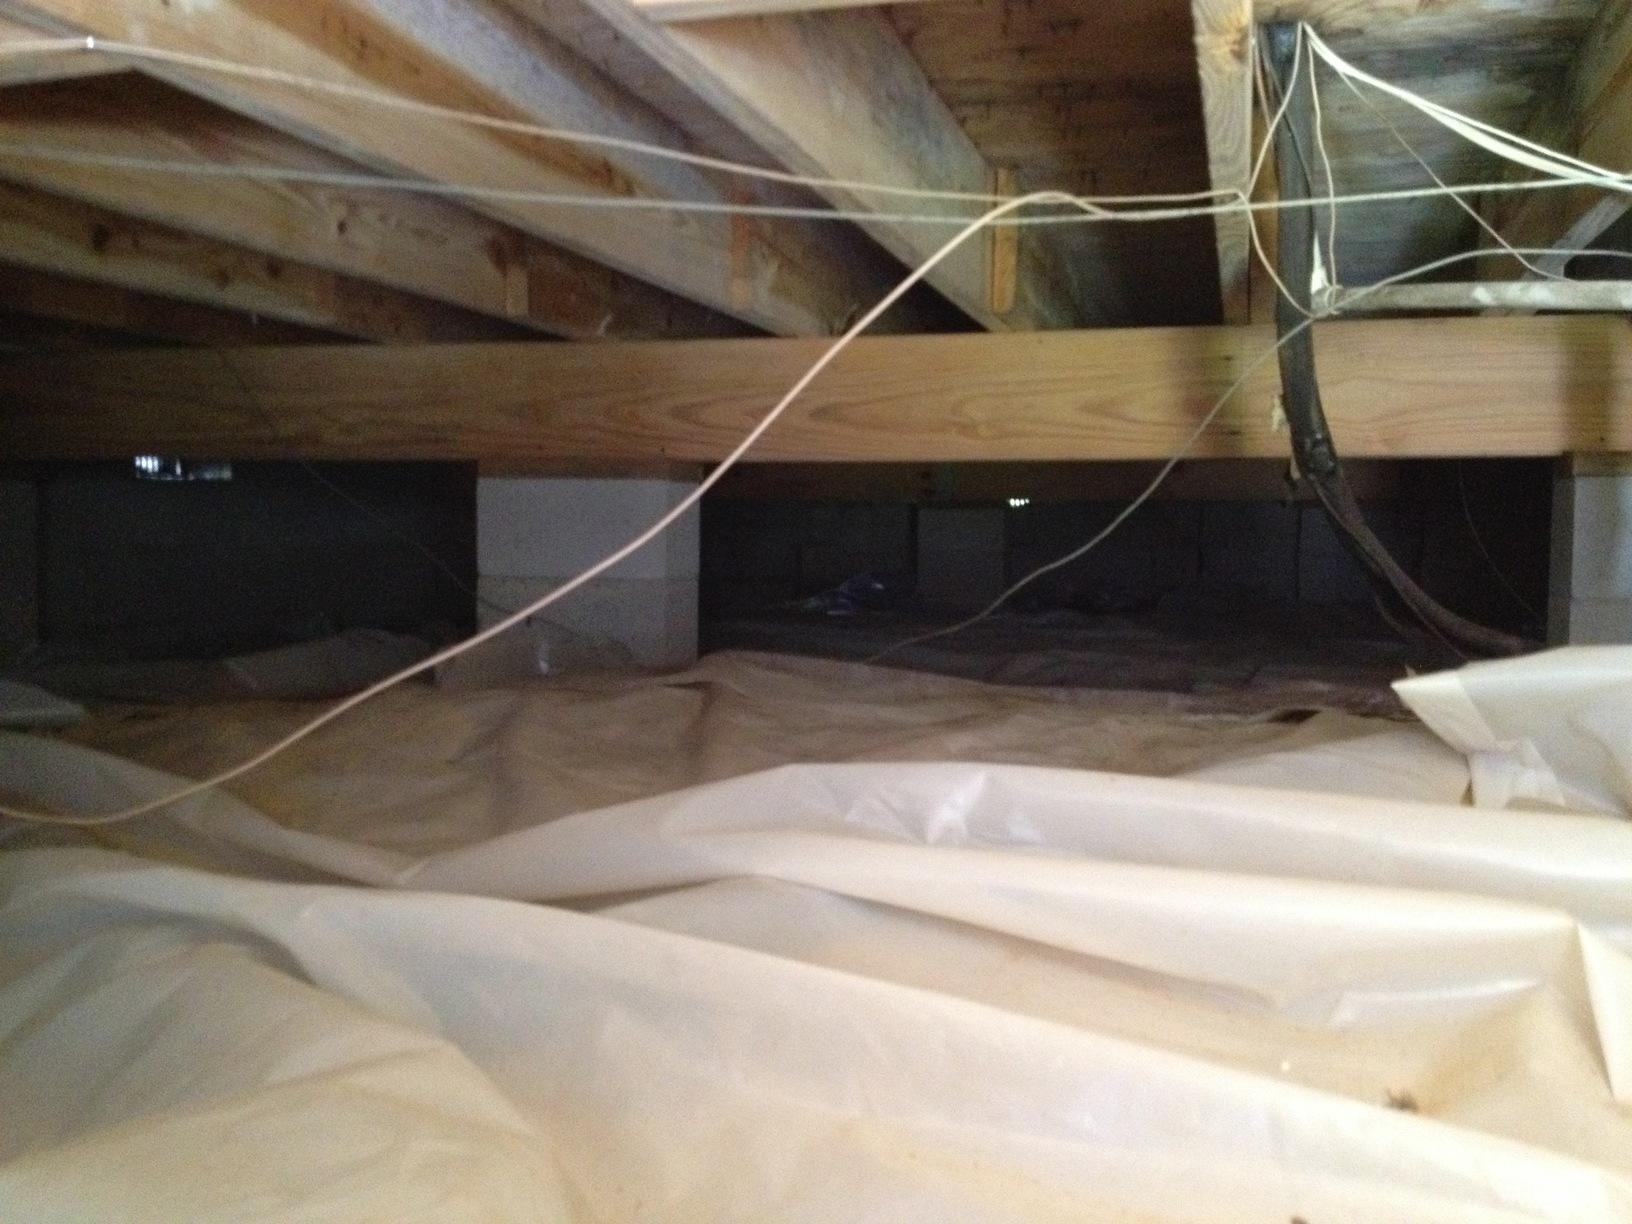 Crawlspace Encapsulation in Awendaw, SC - Before Photo